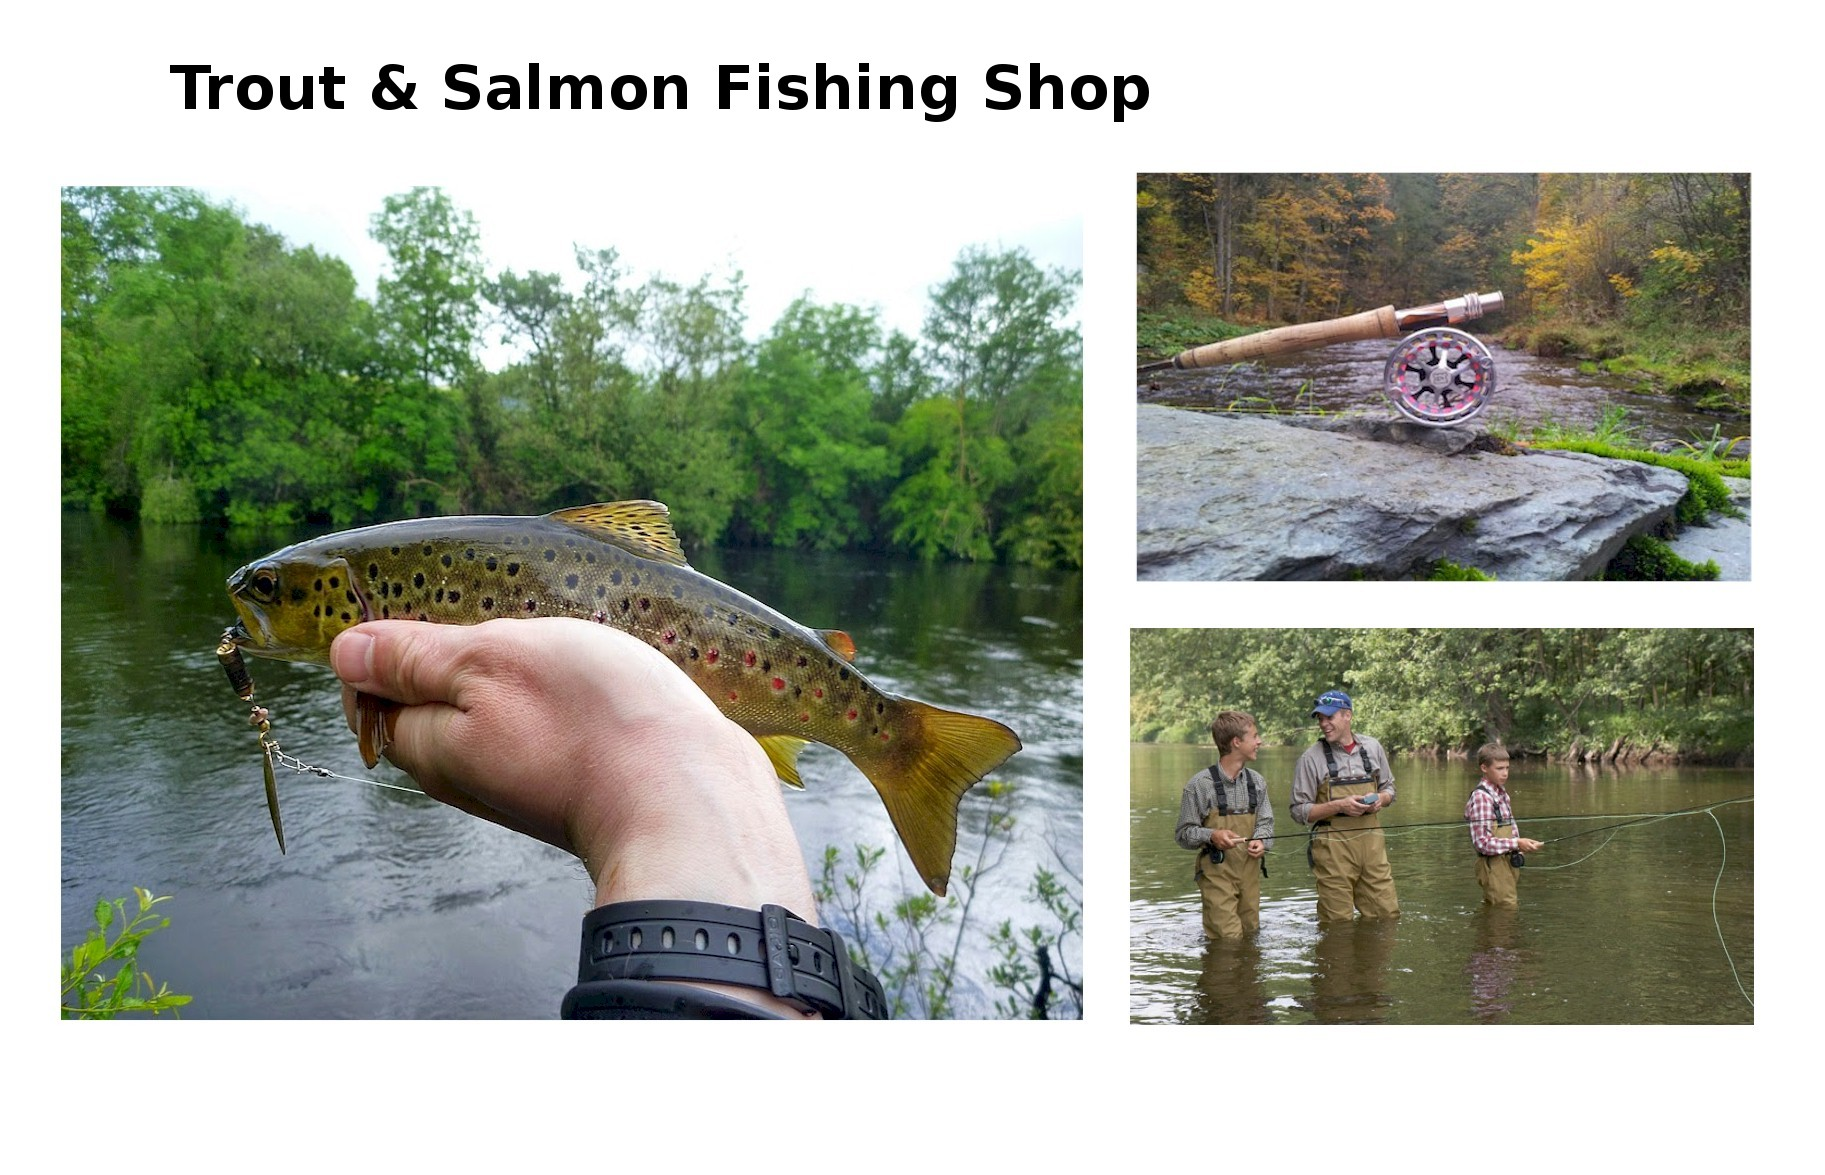 Trout & Salmon Fishing Shop home